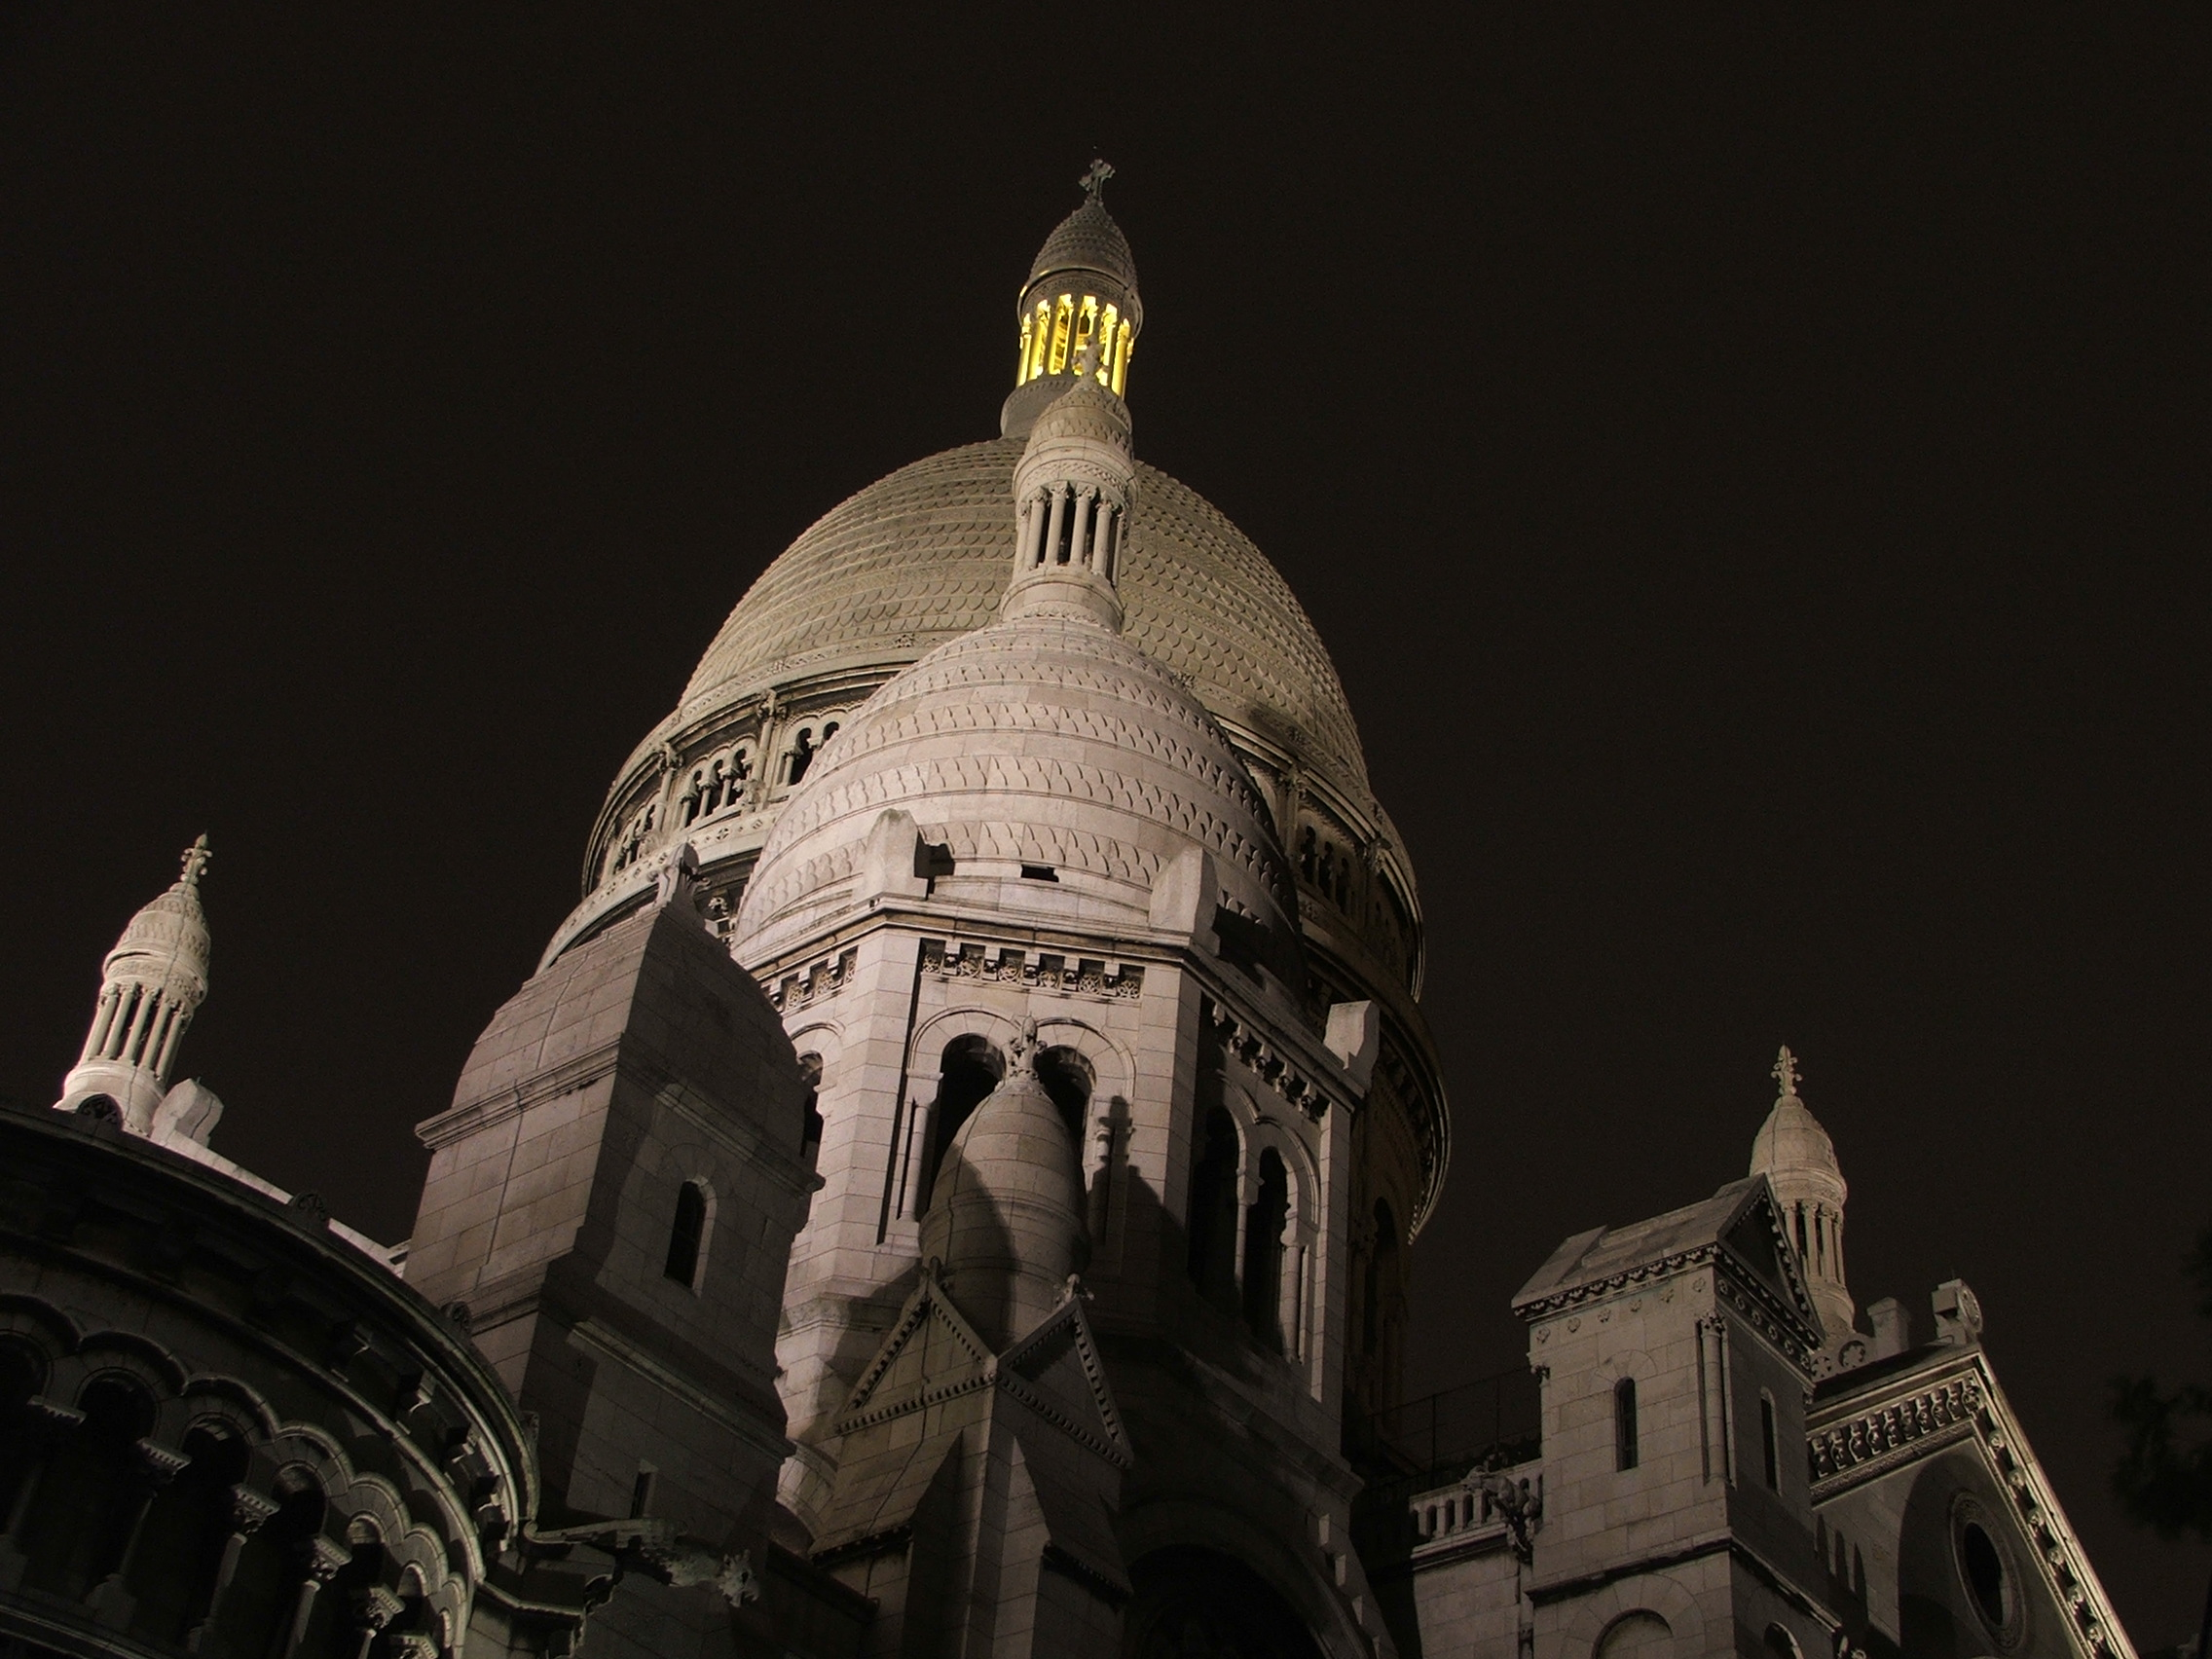 http://upload.wikimedia.org/wikipedia/commons/7/79/Basilique_de_nuit.JPG